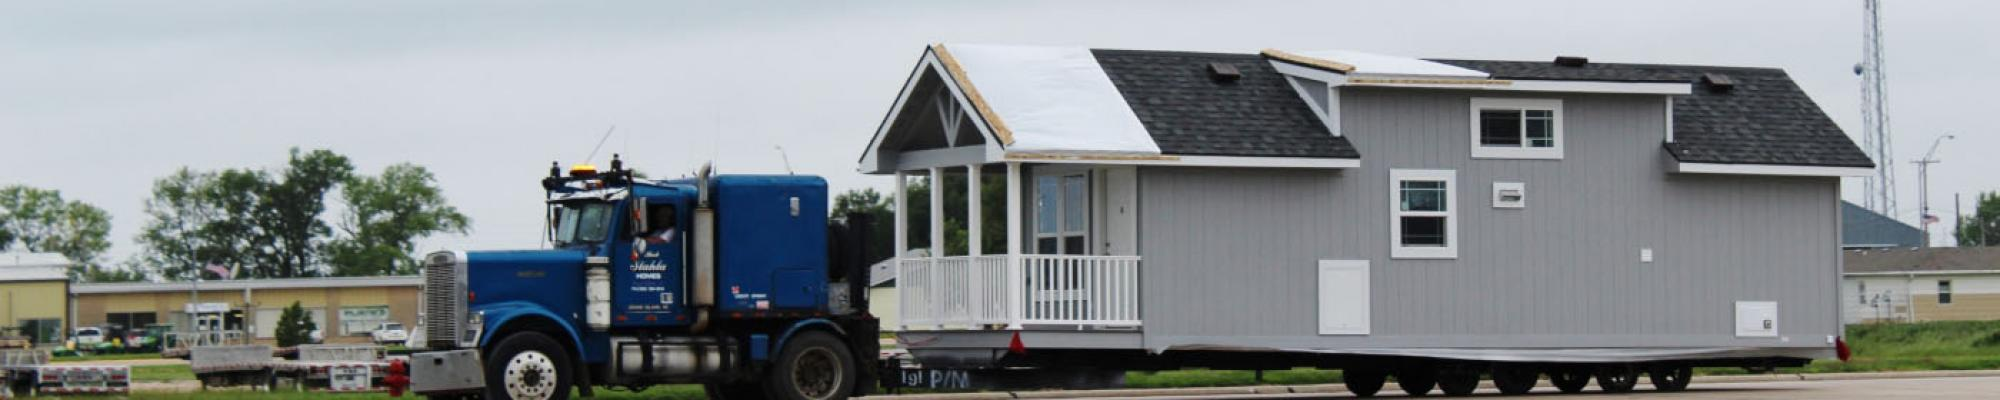 Modular home picture